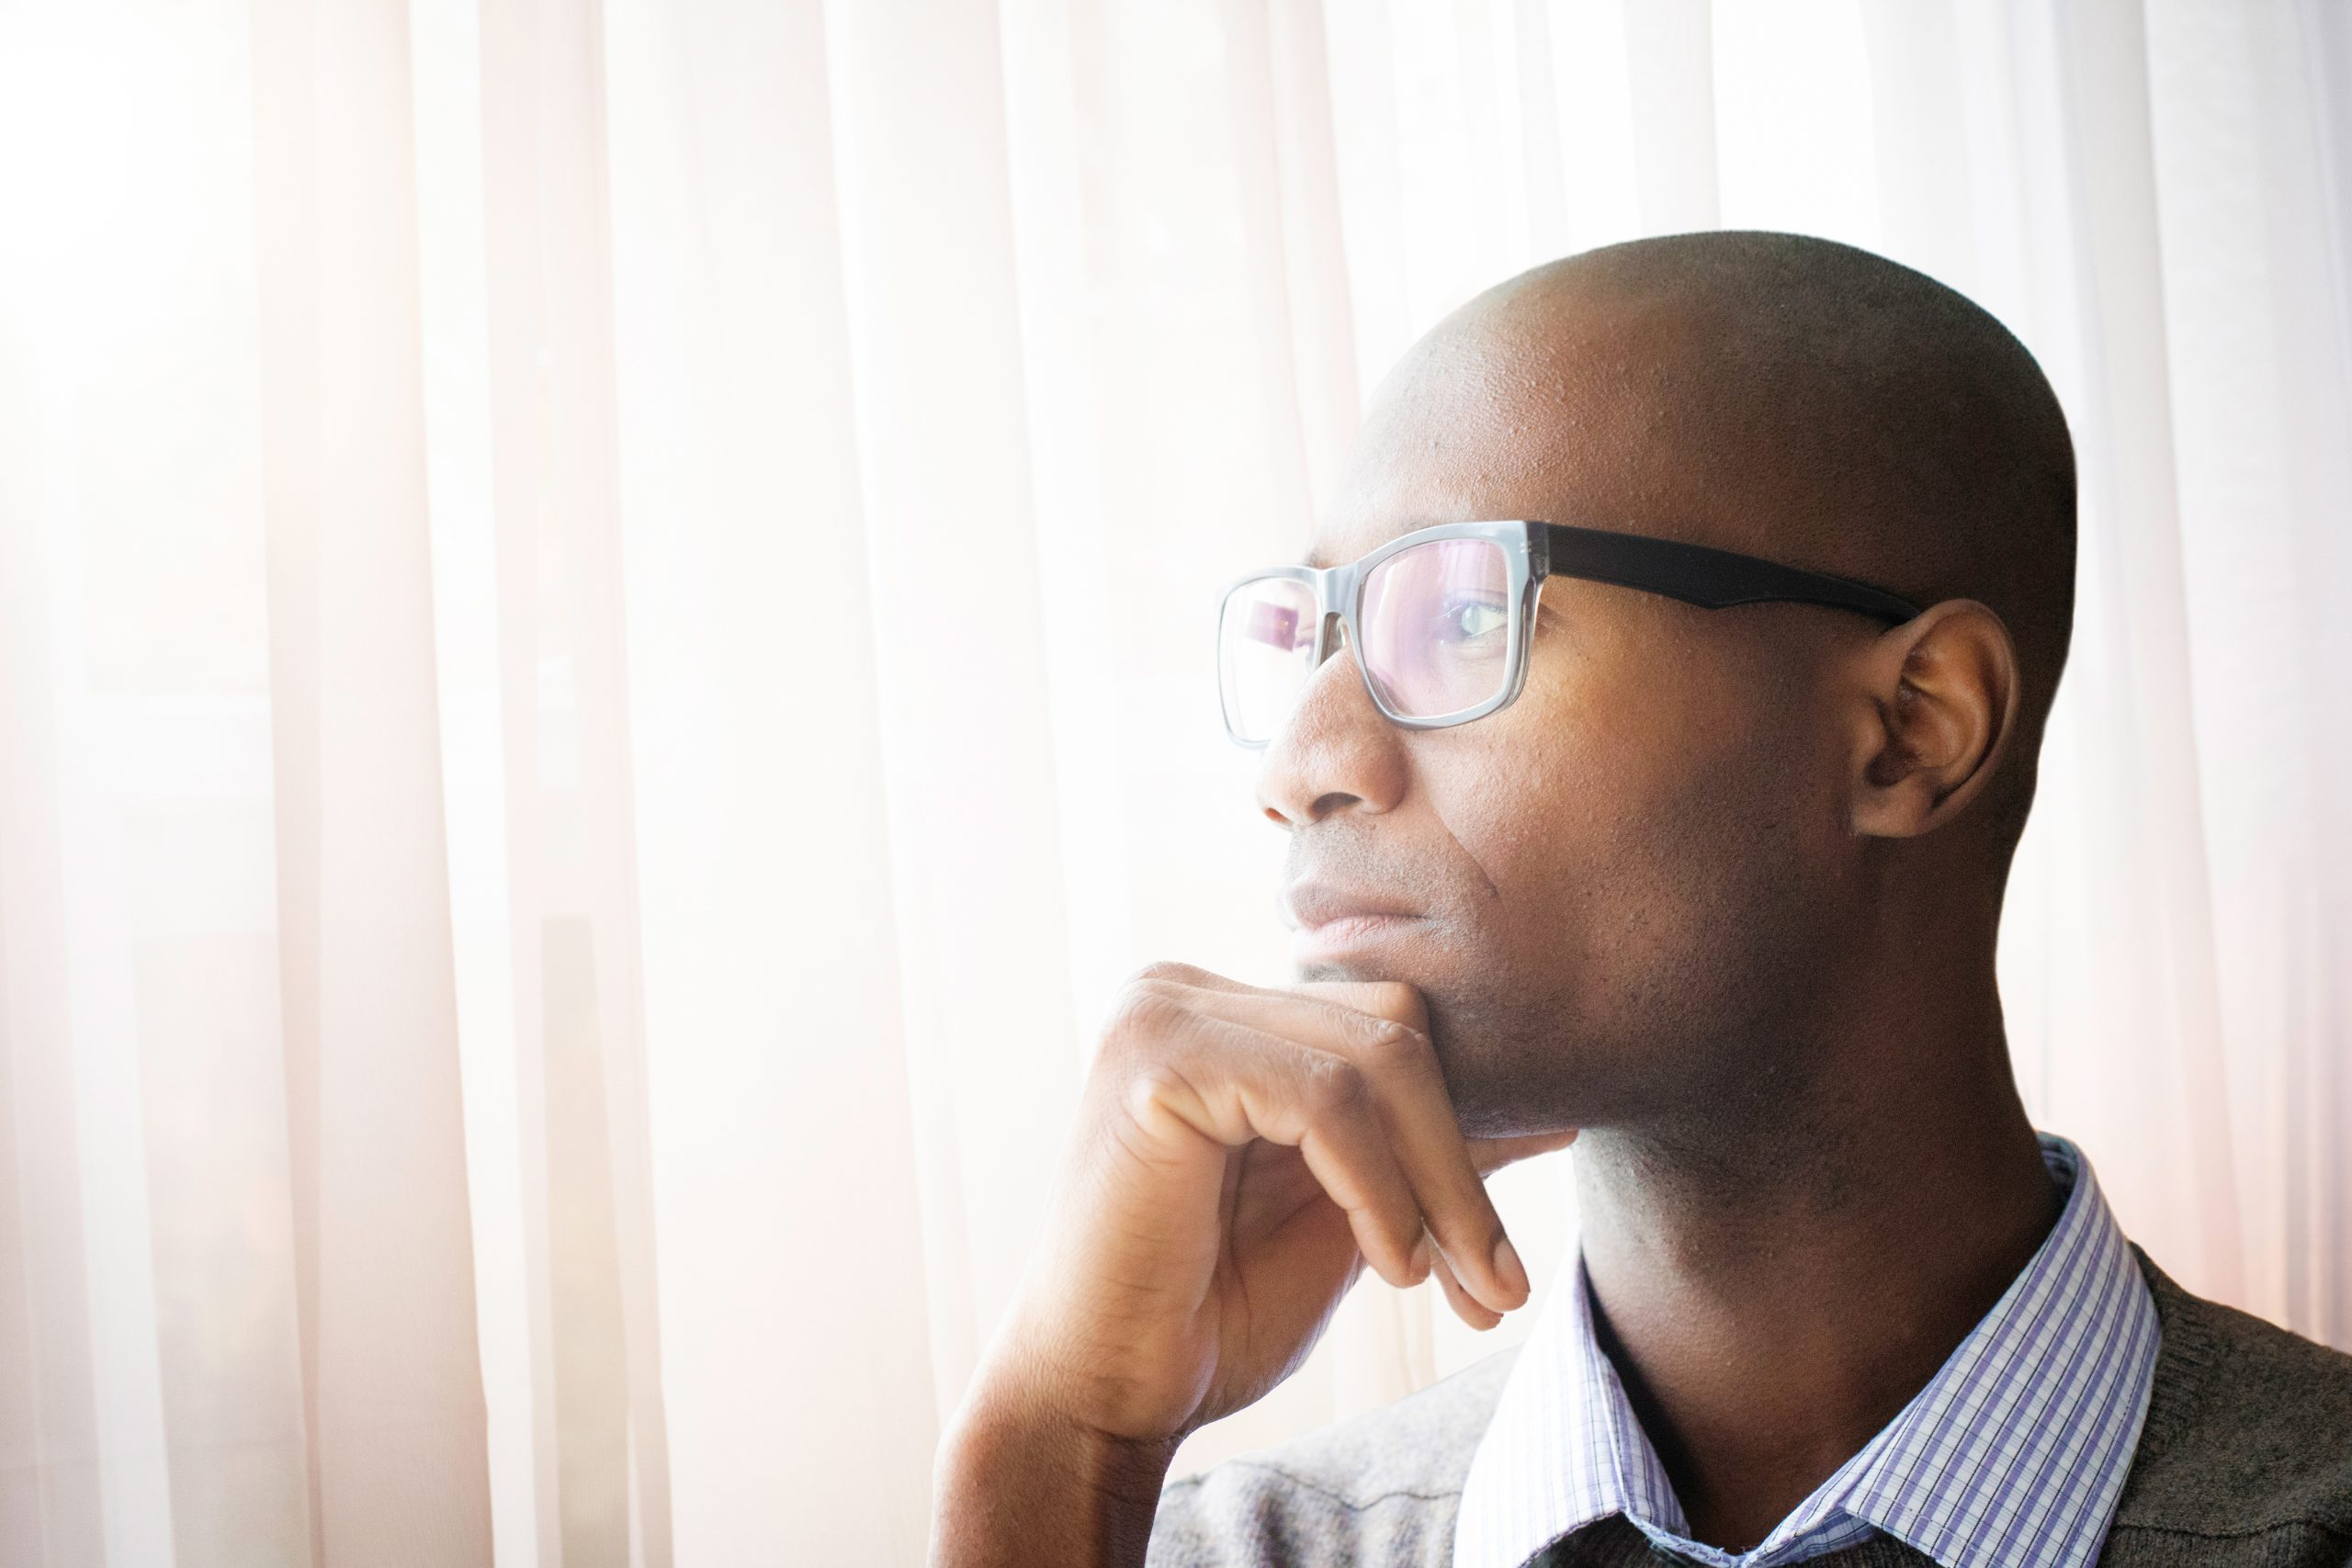 Pensive mature bald black man by a window resting his chin on his hand. He is wearing glasses, a shirt and a sweater.